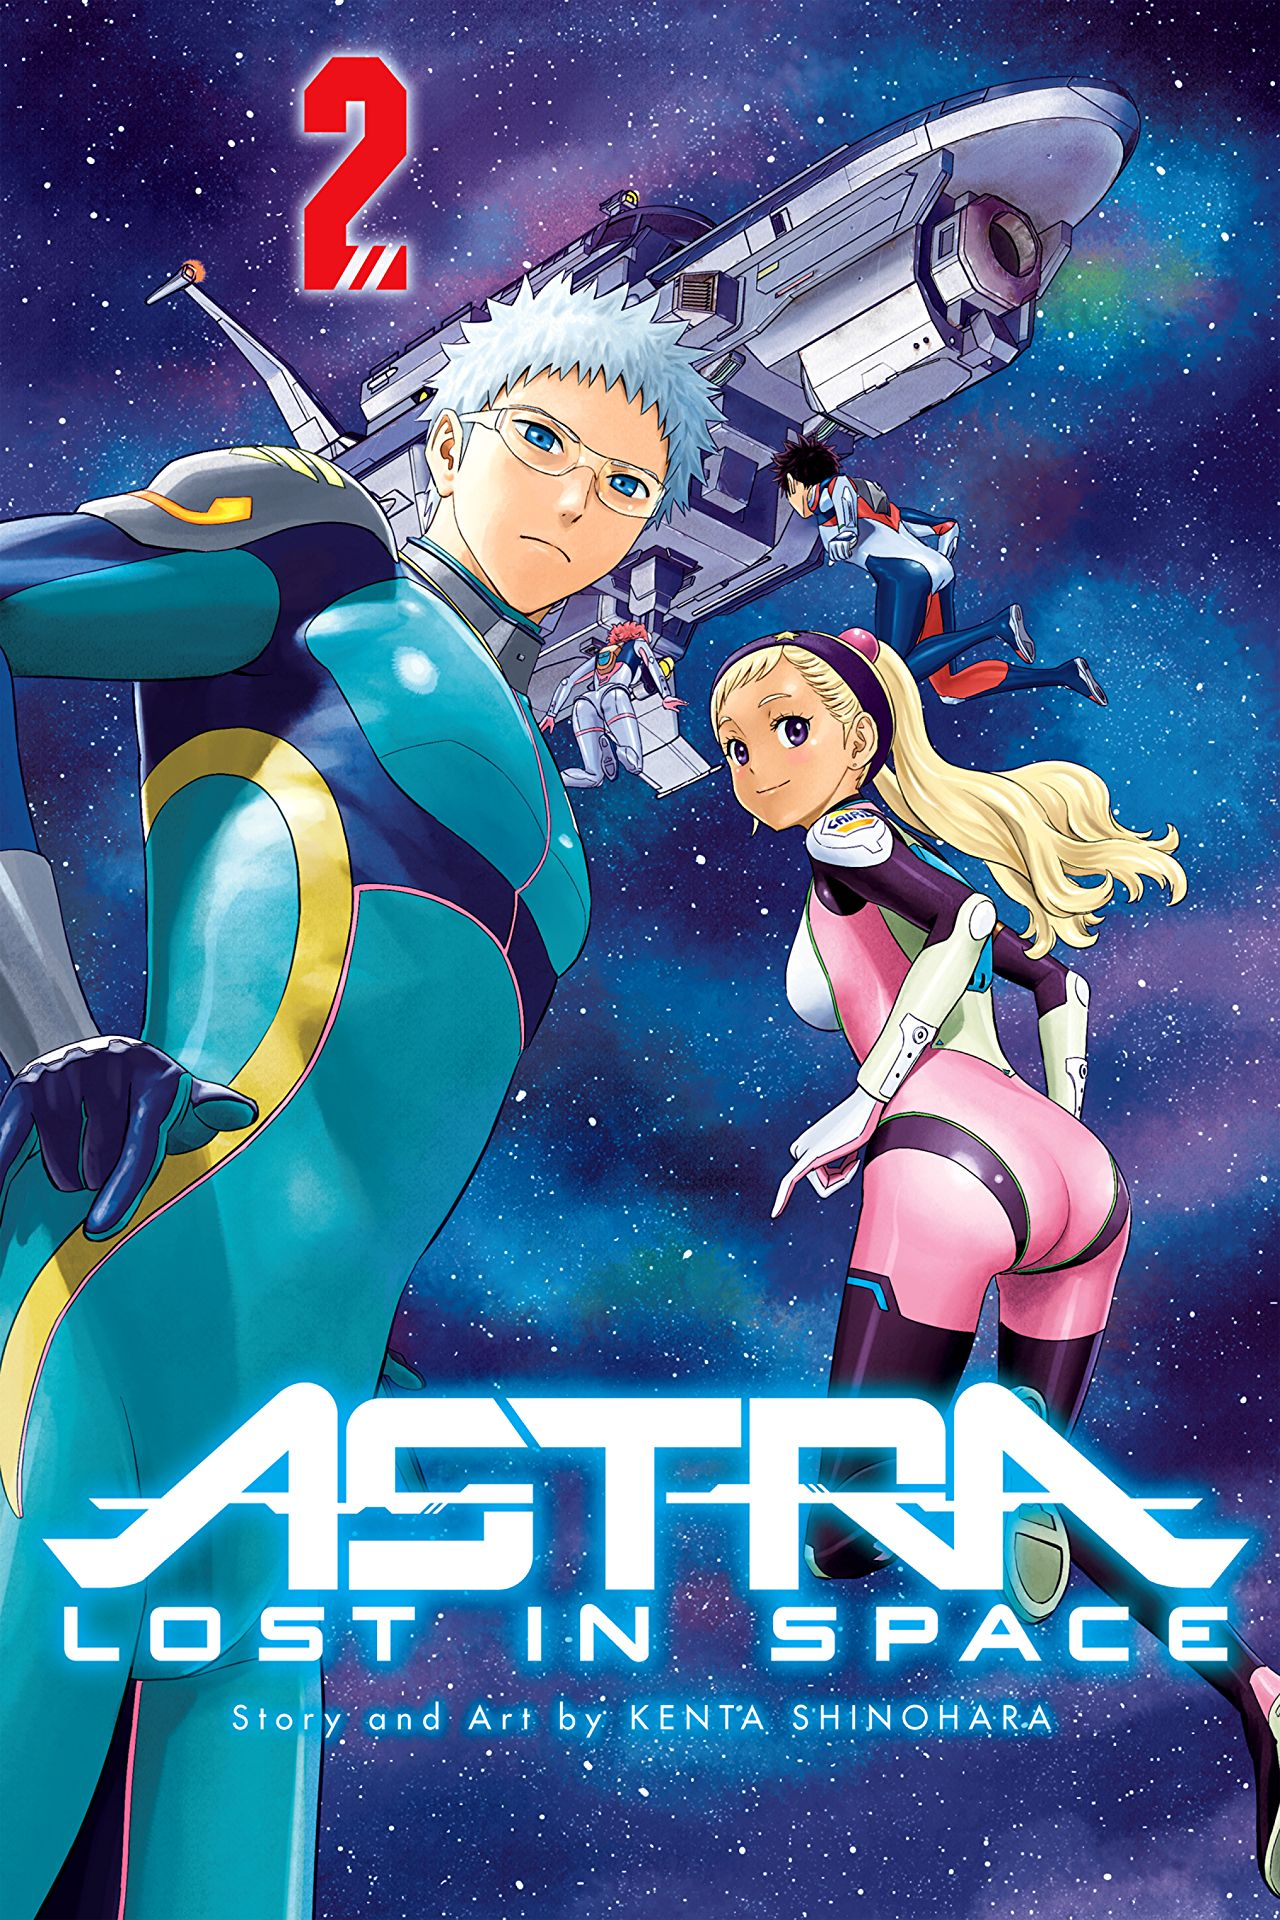 Astra Lost in Space Vol. 2 Review